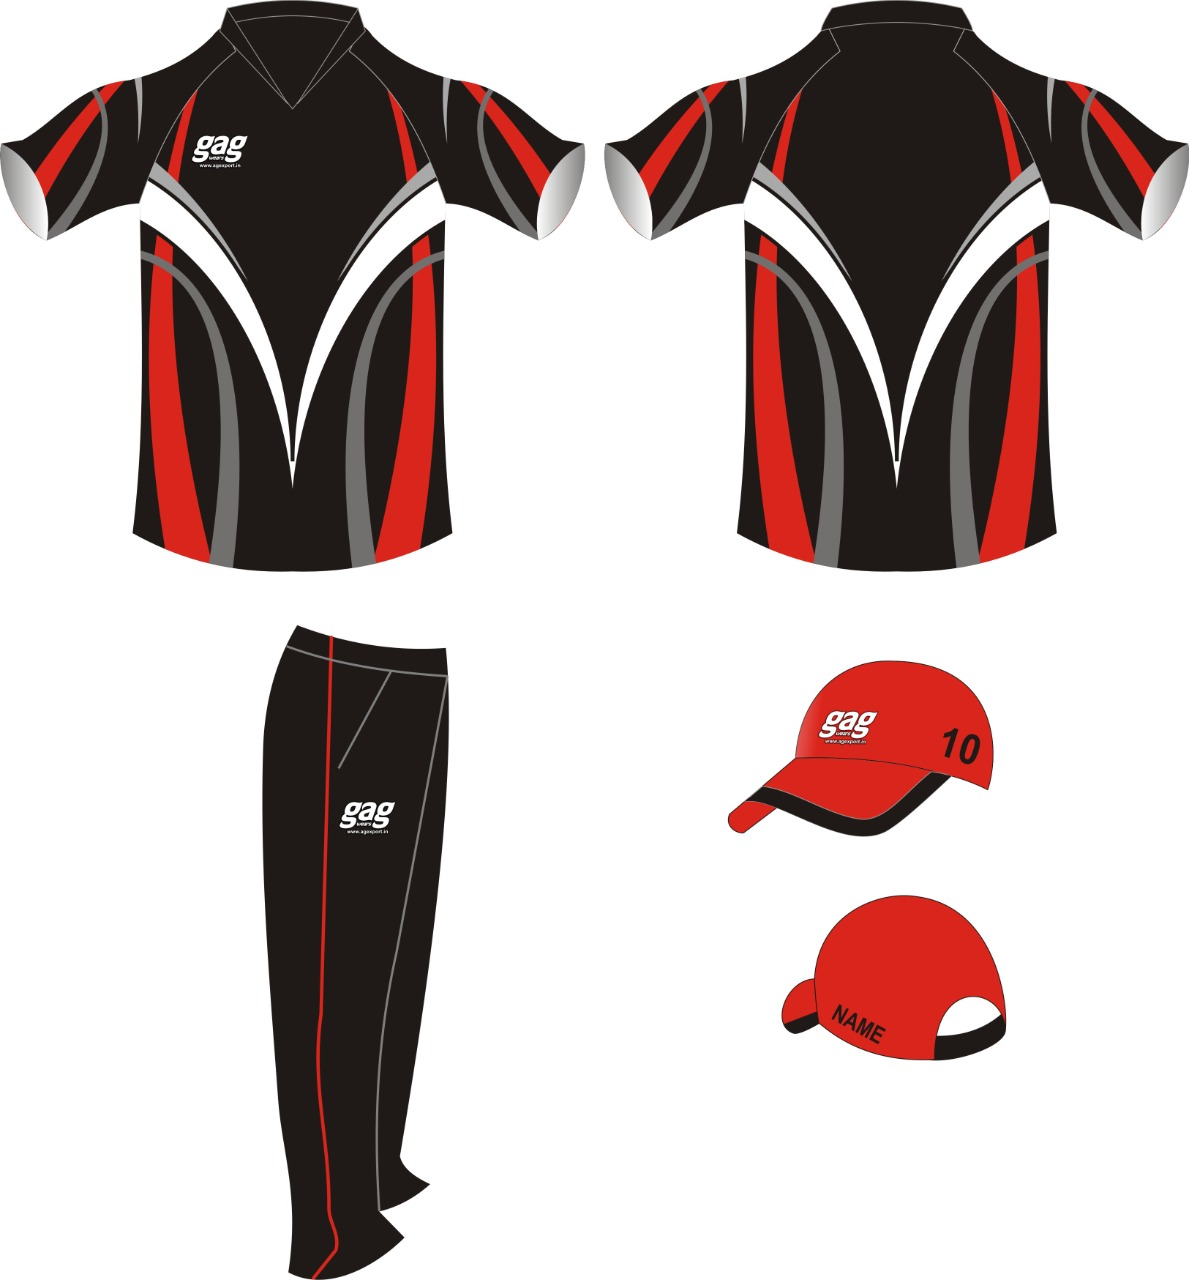 Mens Cricket Uniform Manufacturers in Jalandhar in Australia